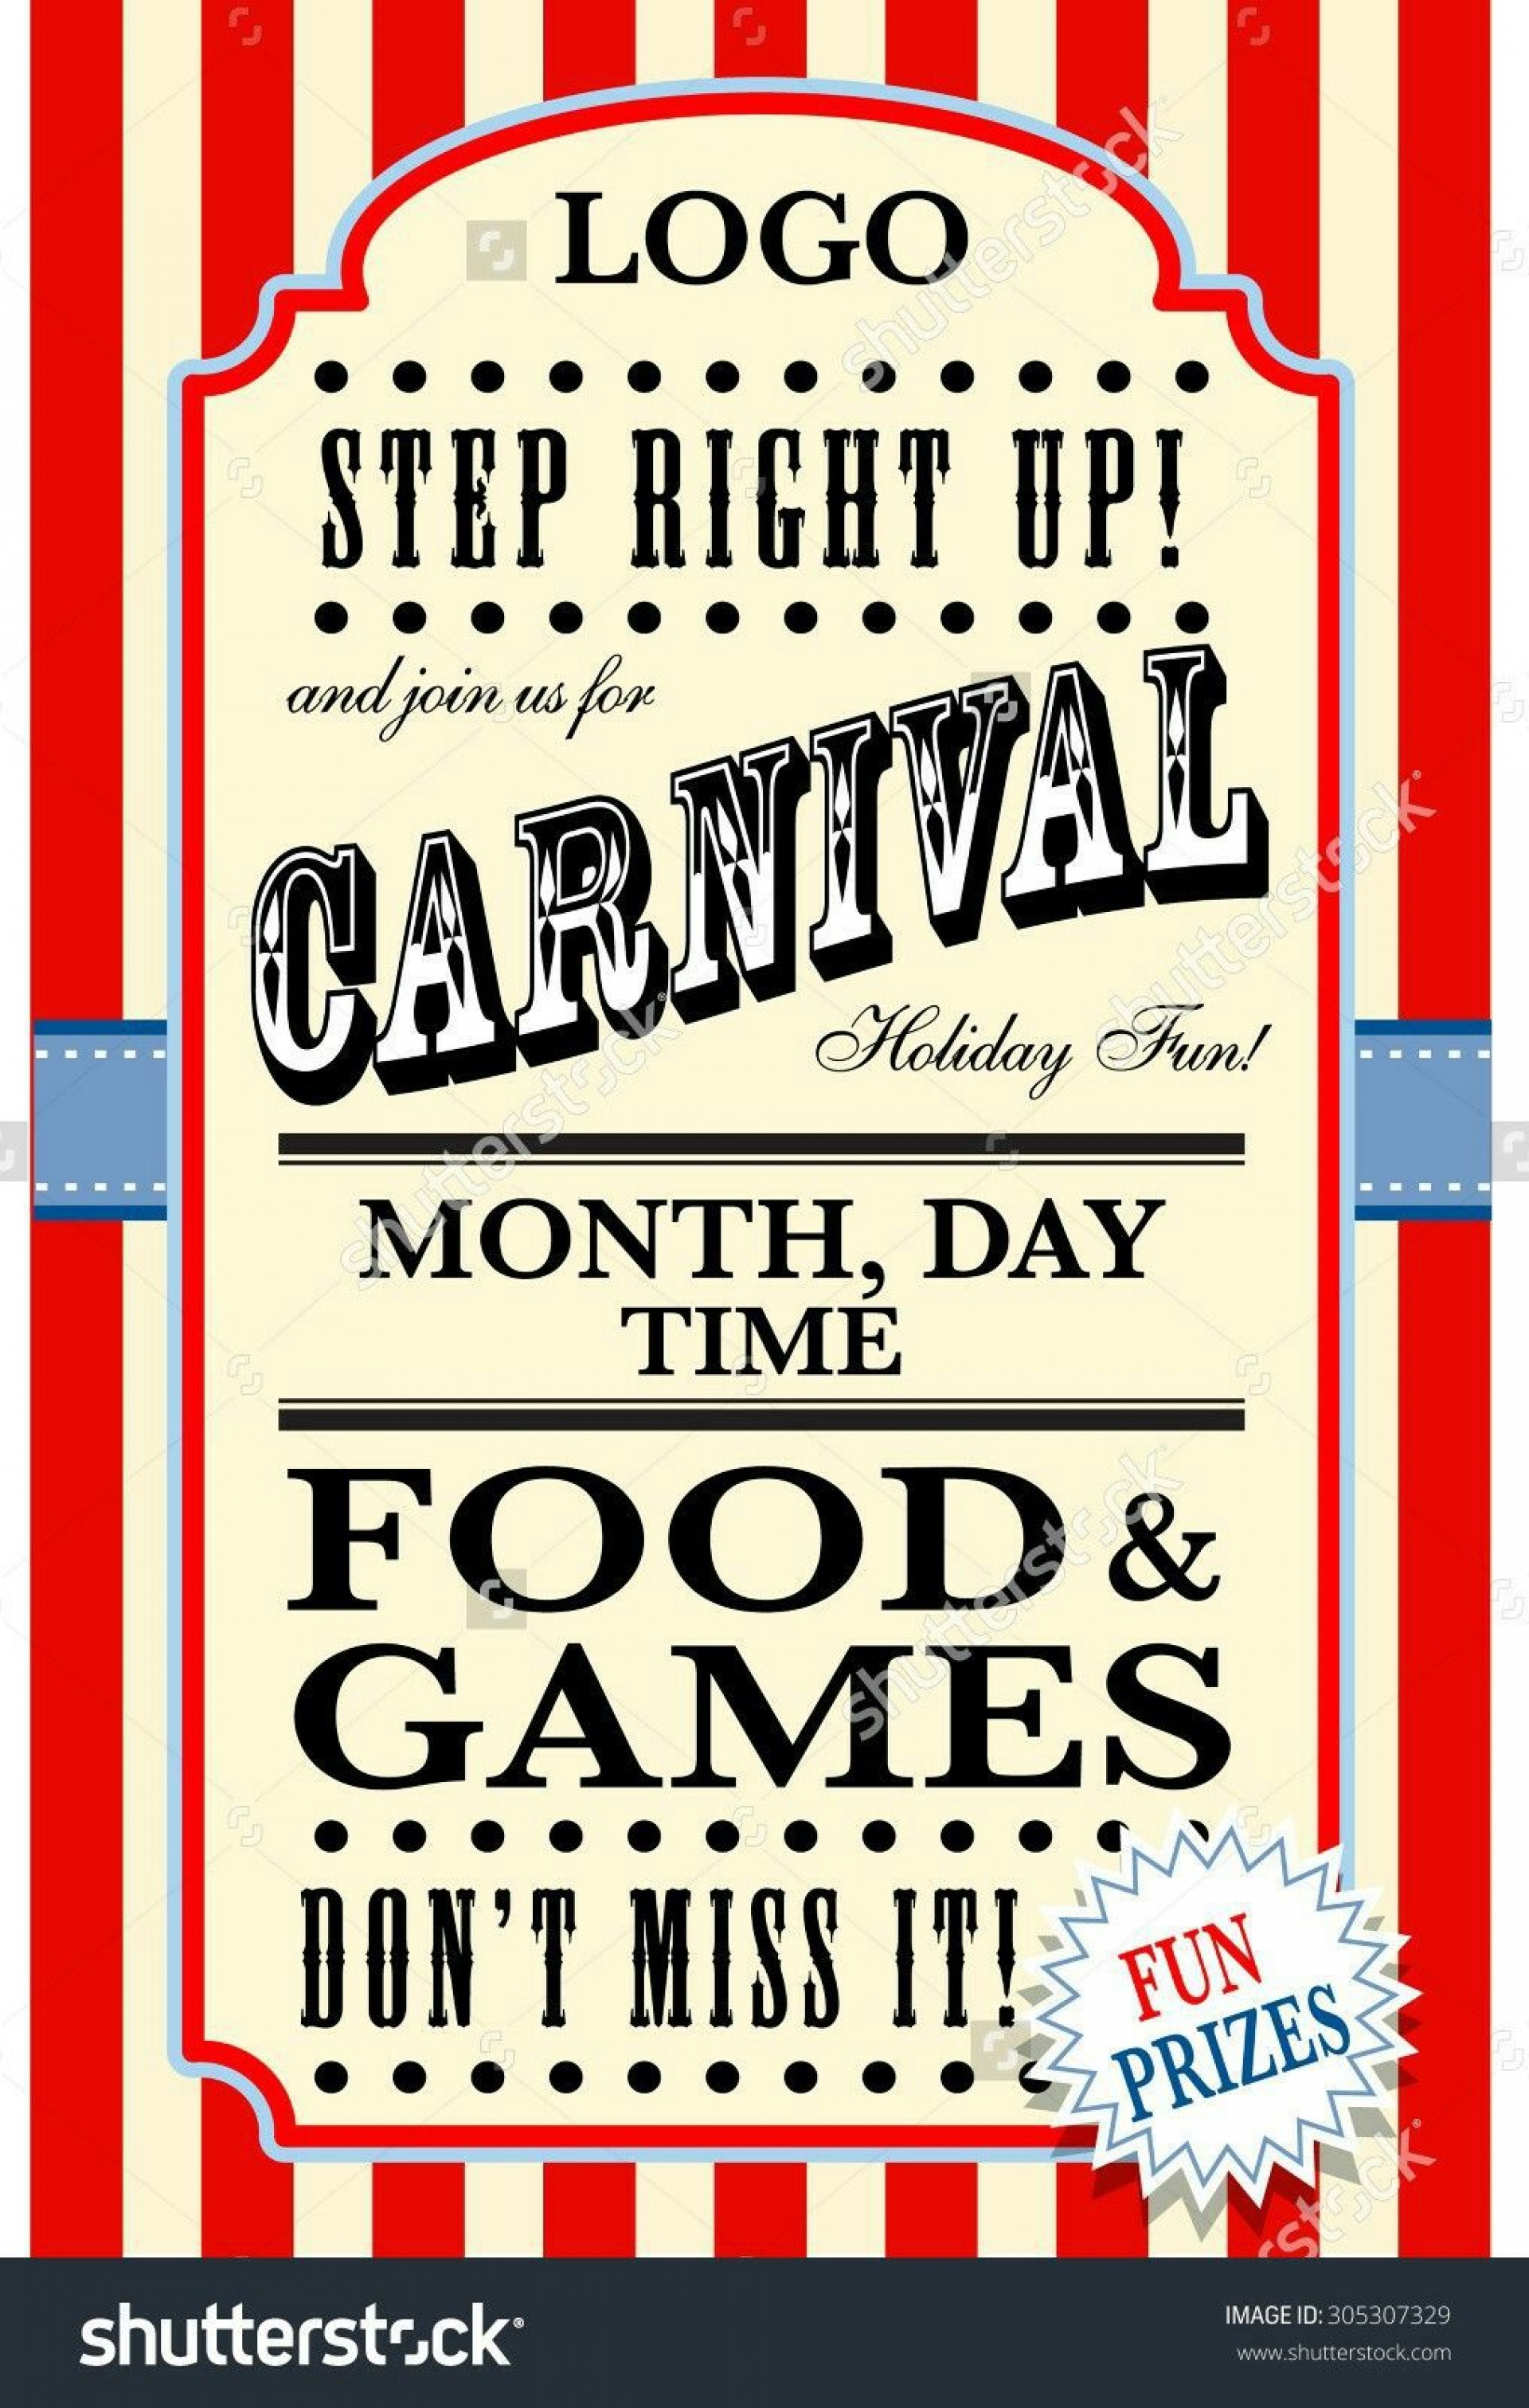 005 Staggering Free School Carnival Flyer Template Photo  Templates Download1920